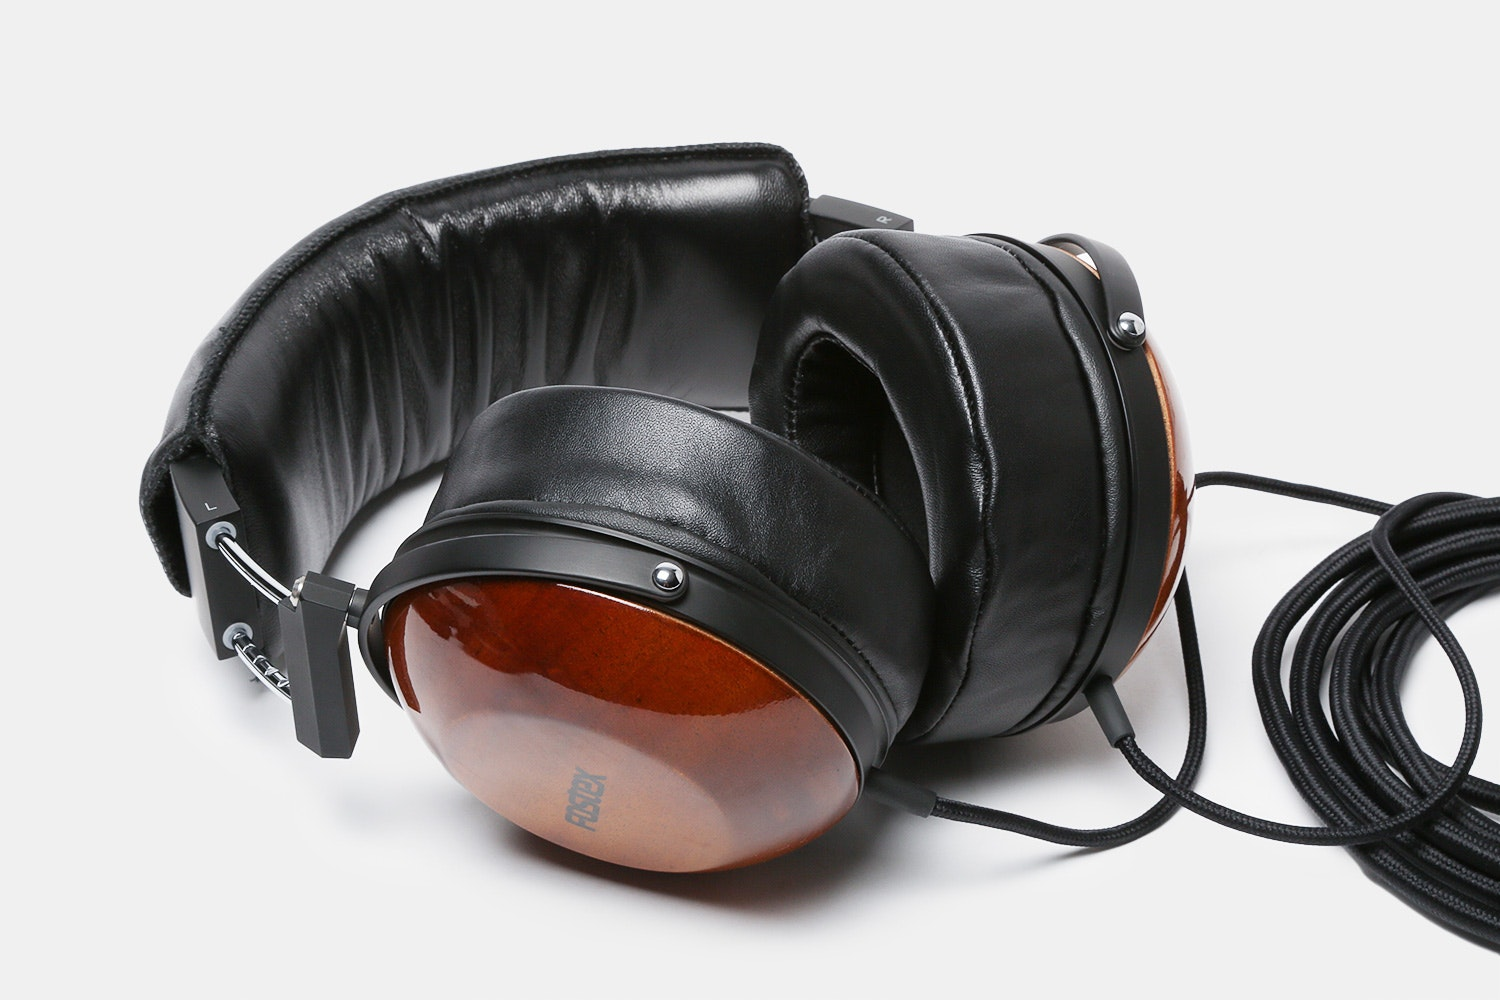 ZMF Ear Pads for Fostex, Audeze & More